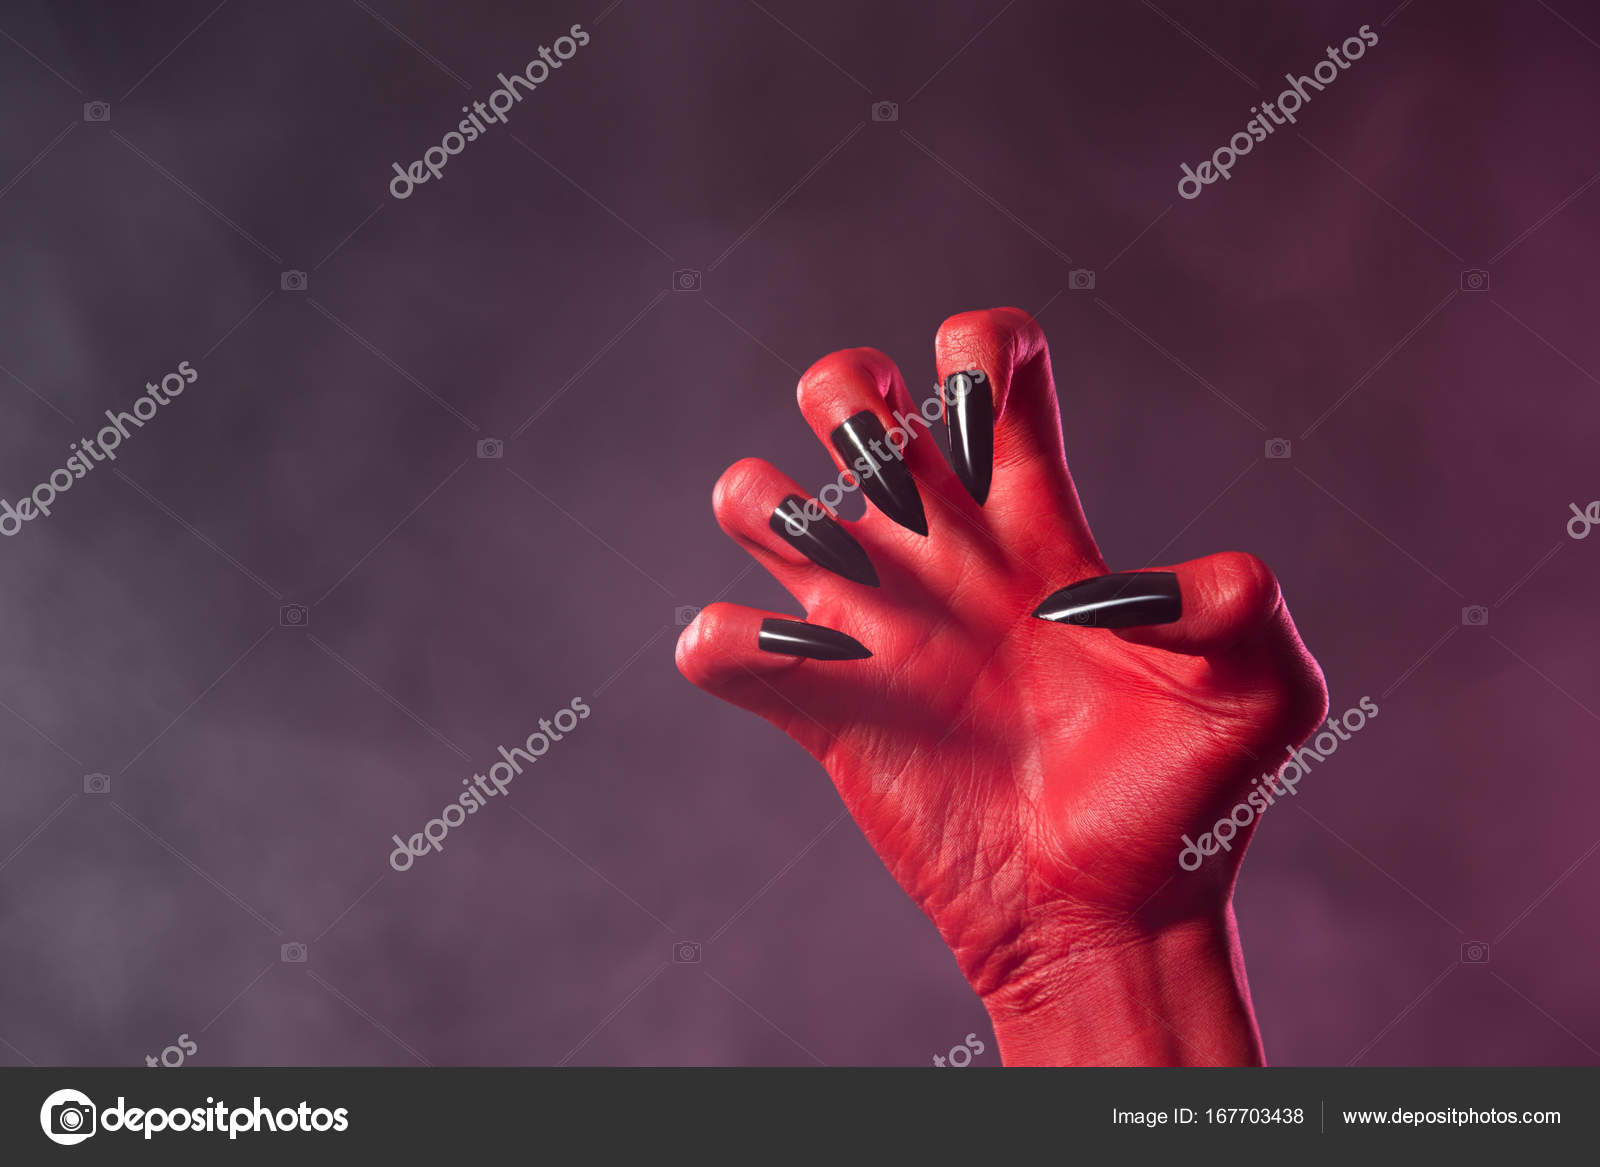 red devil hand with black nails stock photo elisanth 167703438